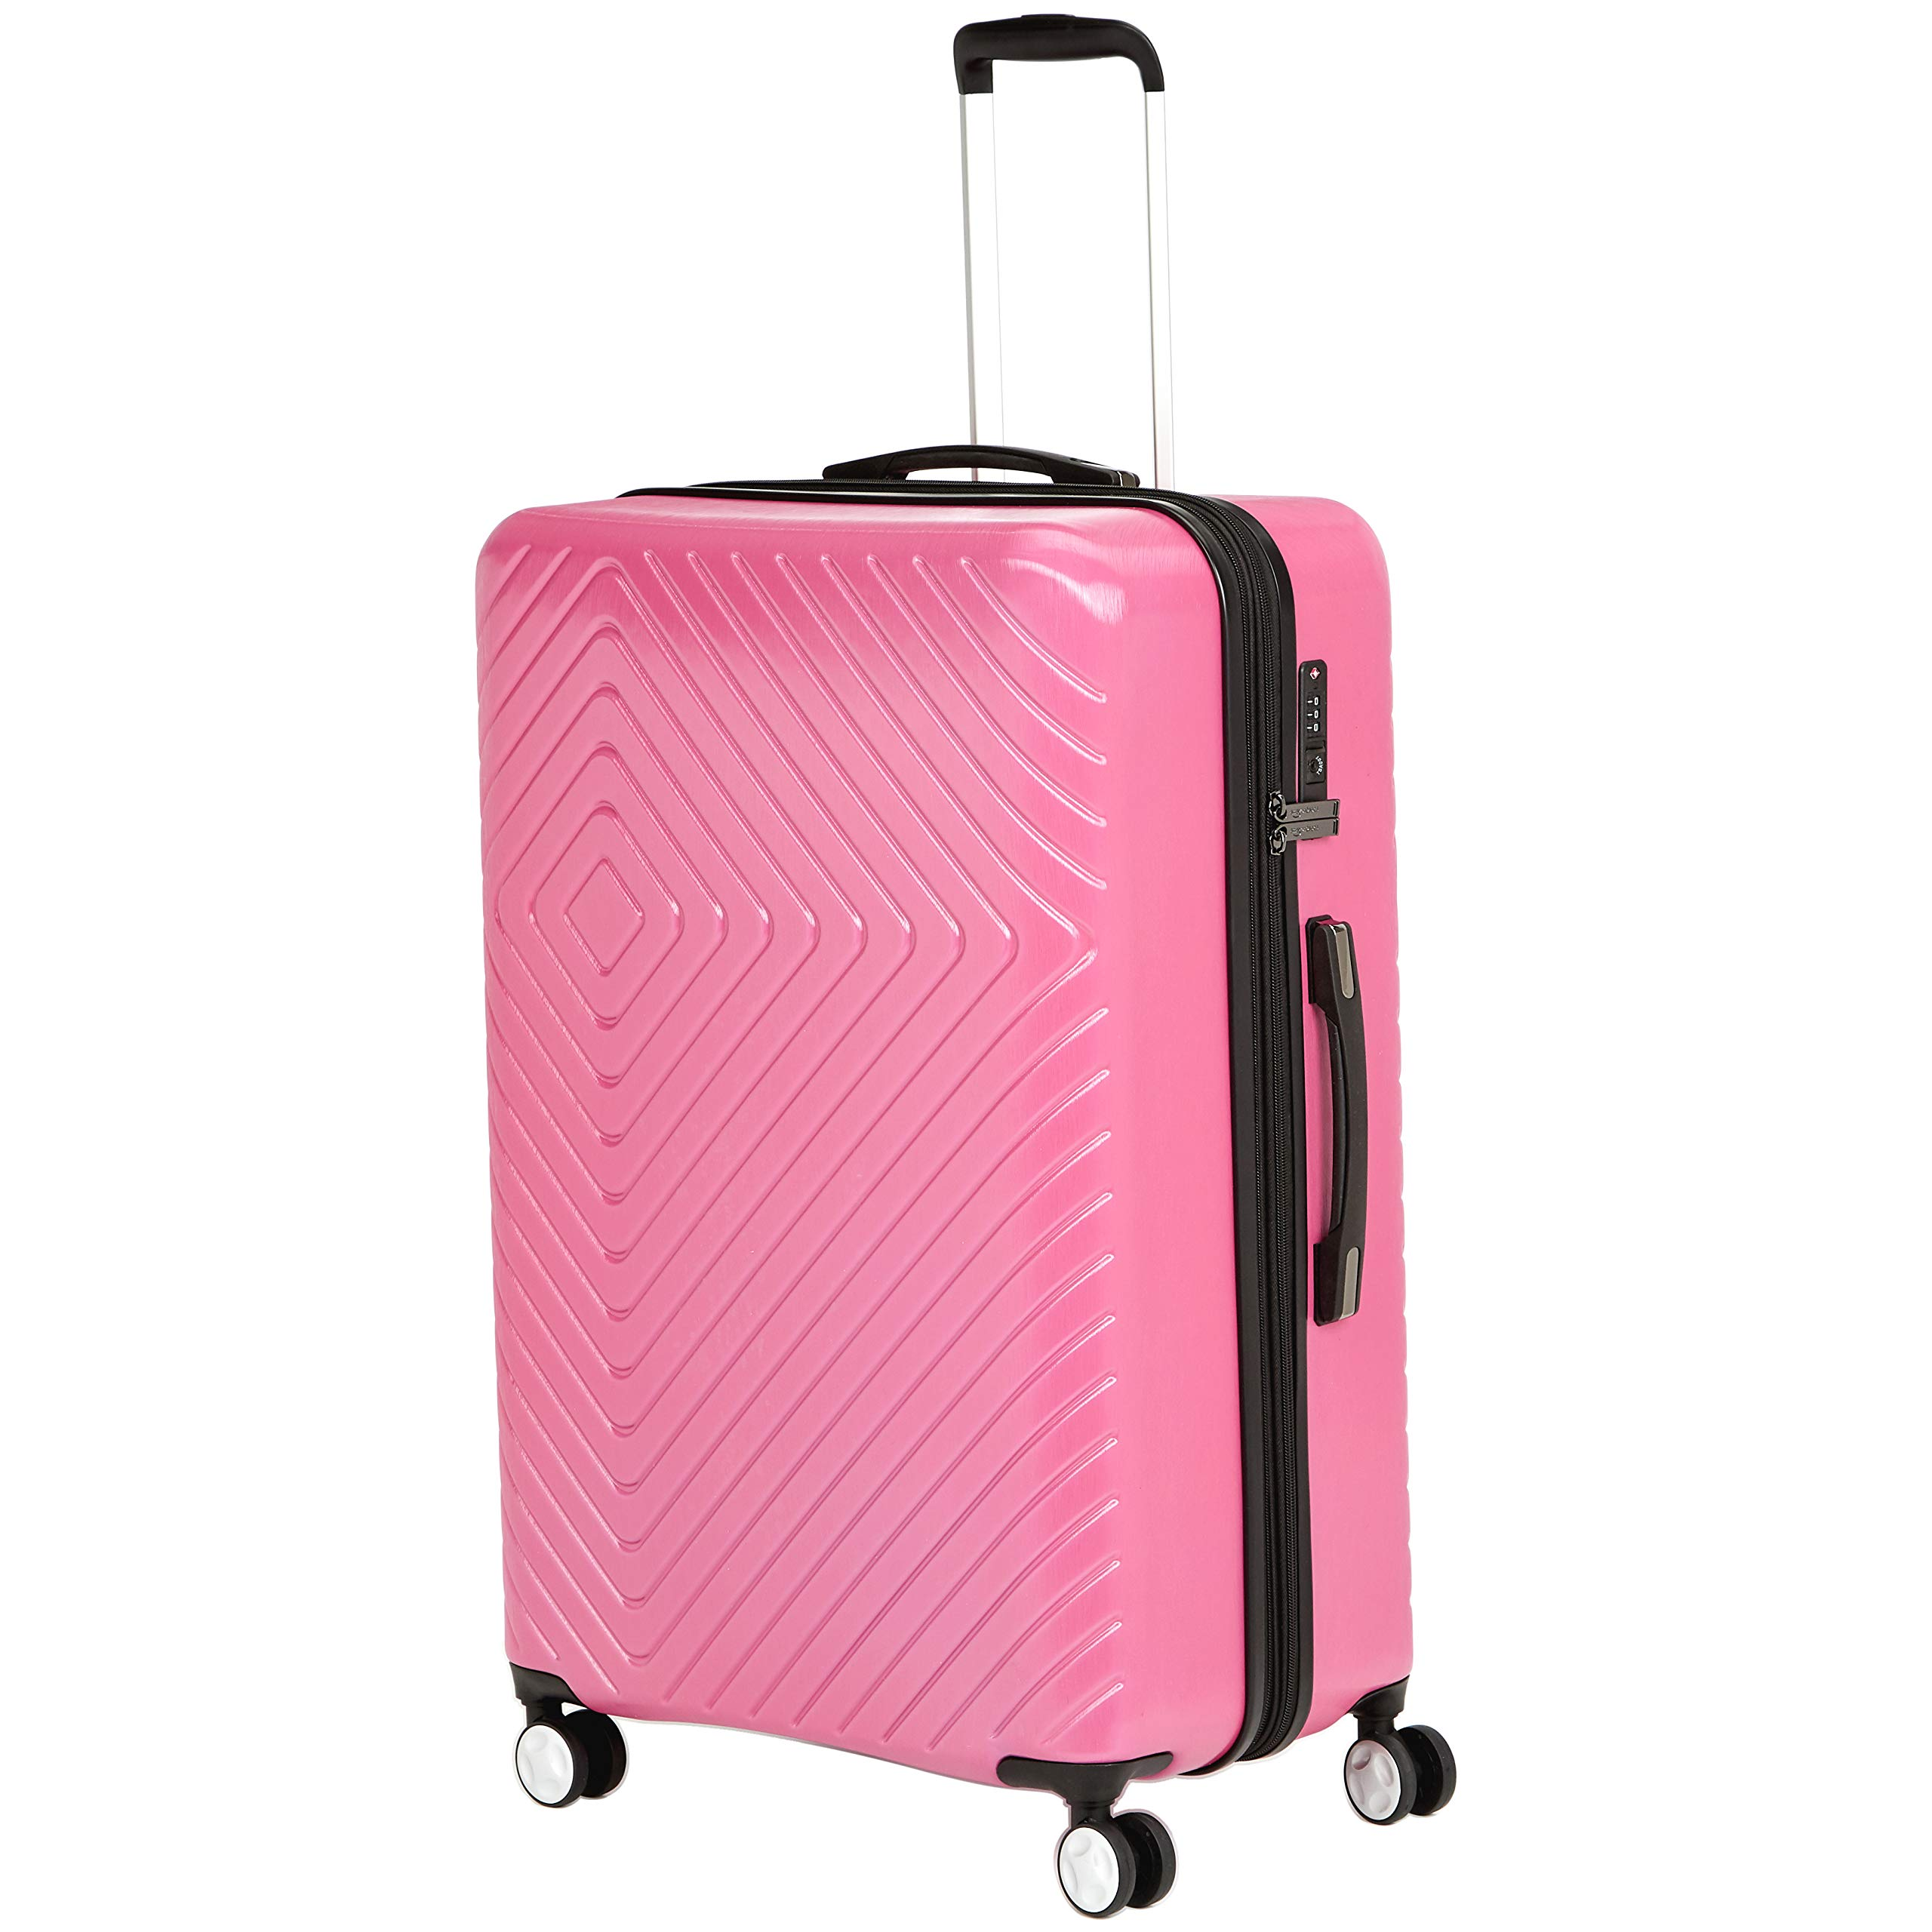 AmazonBasics Geometric Travel Luggage Expandable Suitcase Spinner with Wheels and Built-In TSA Lock, 28 Inch - Pink